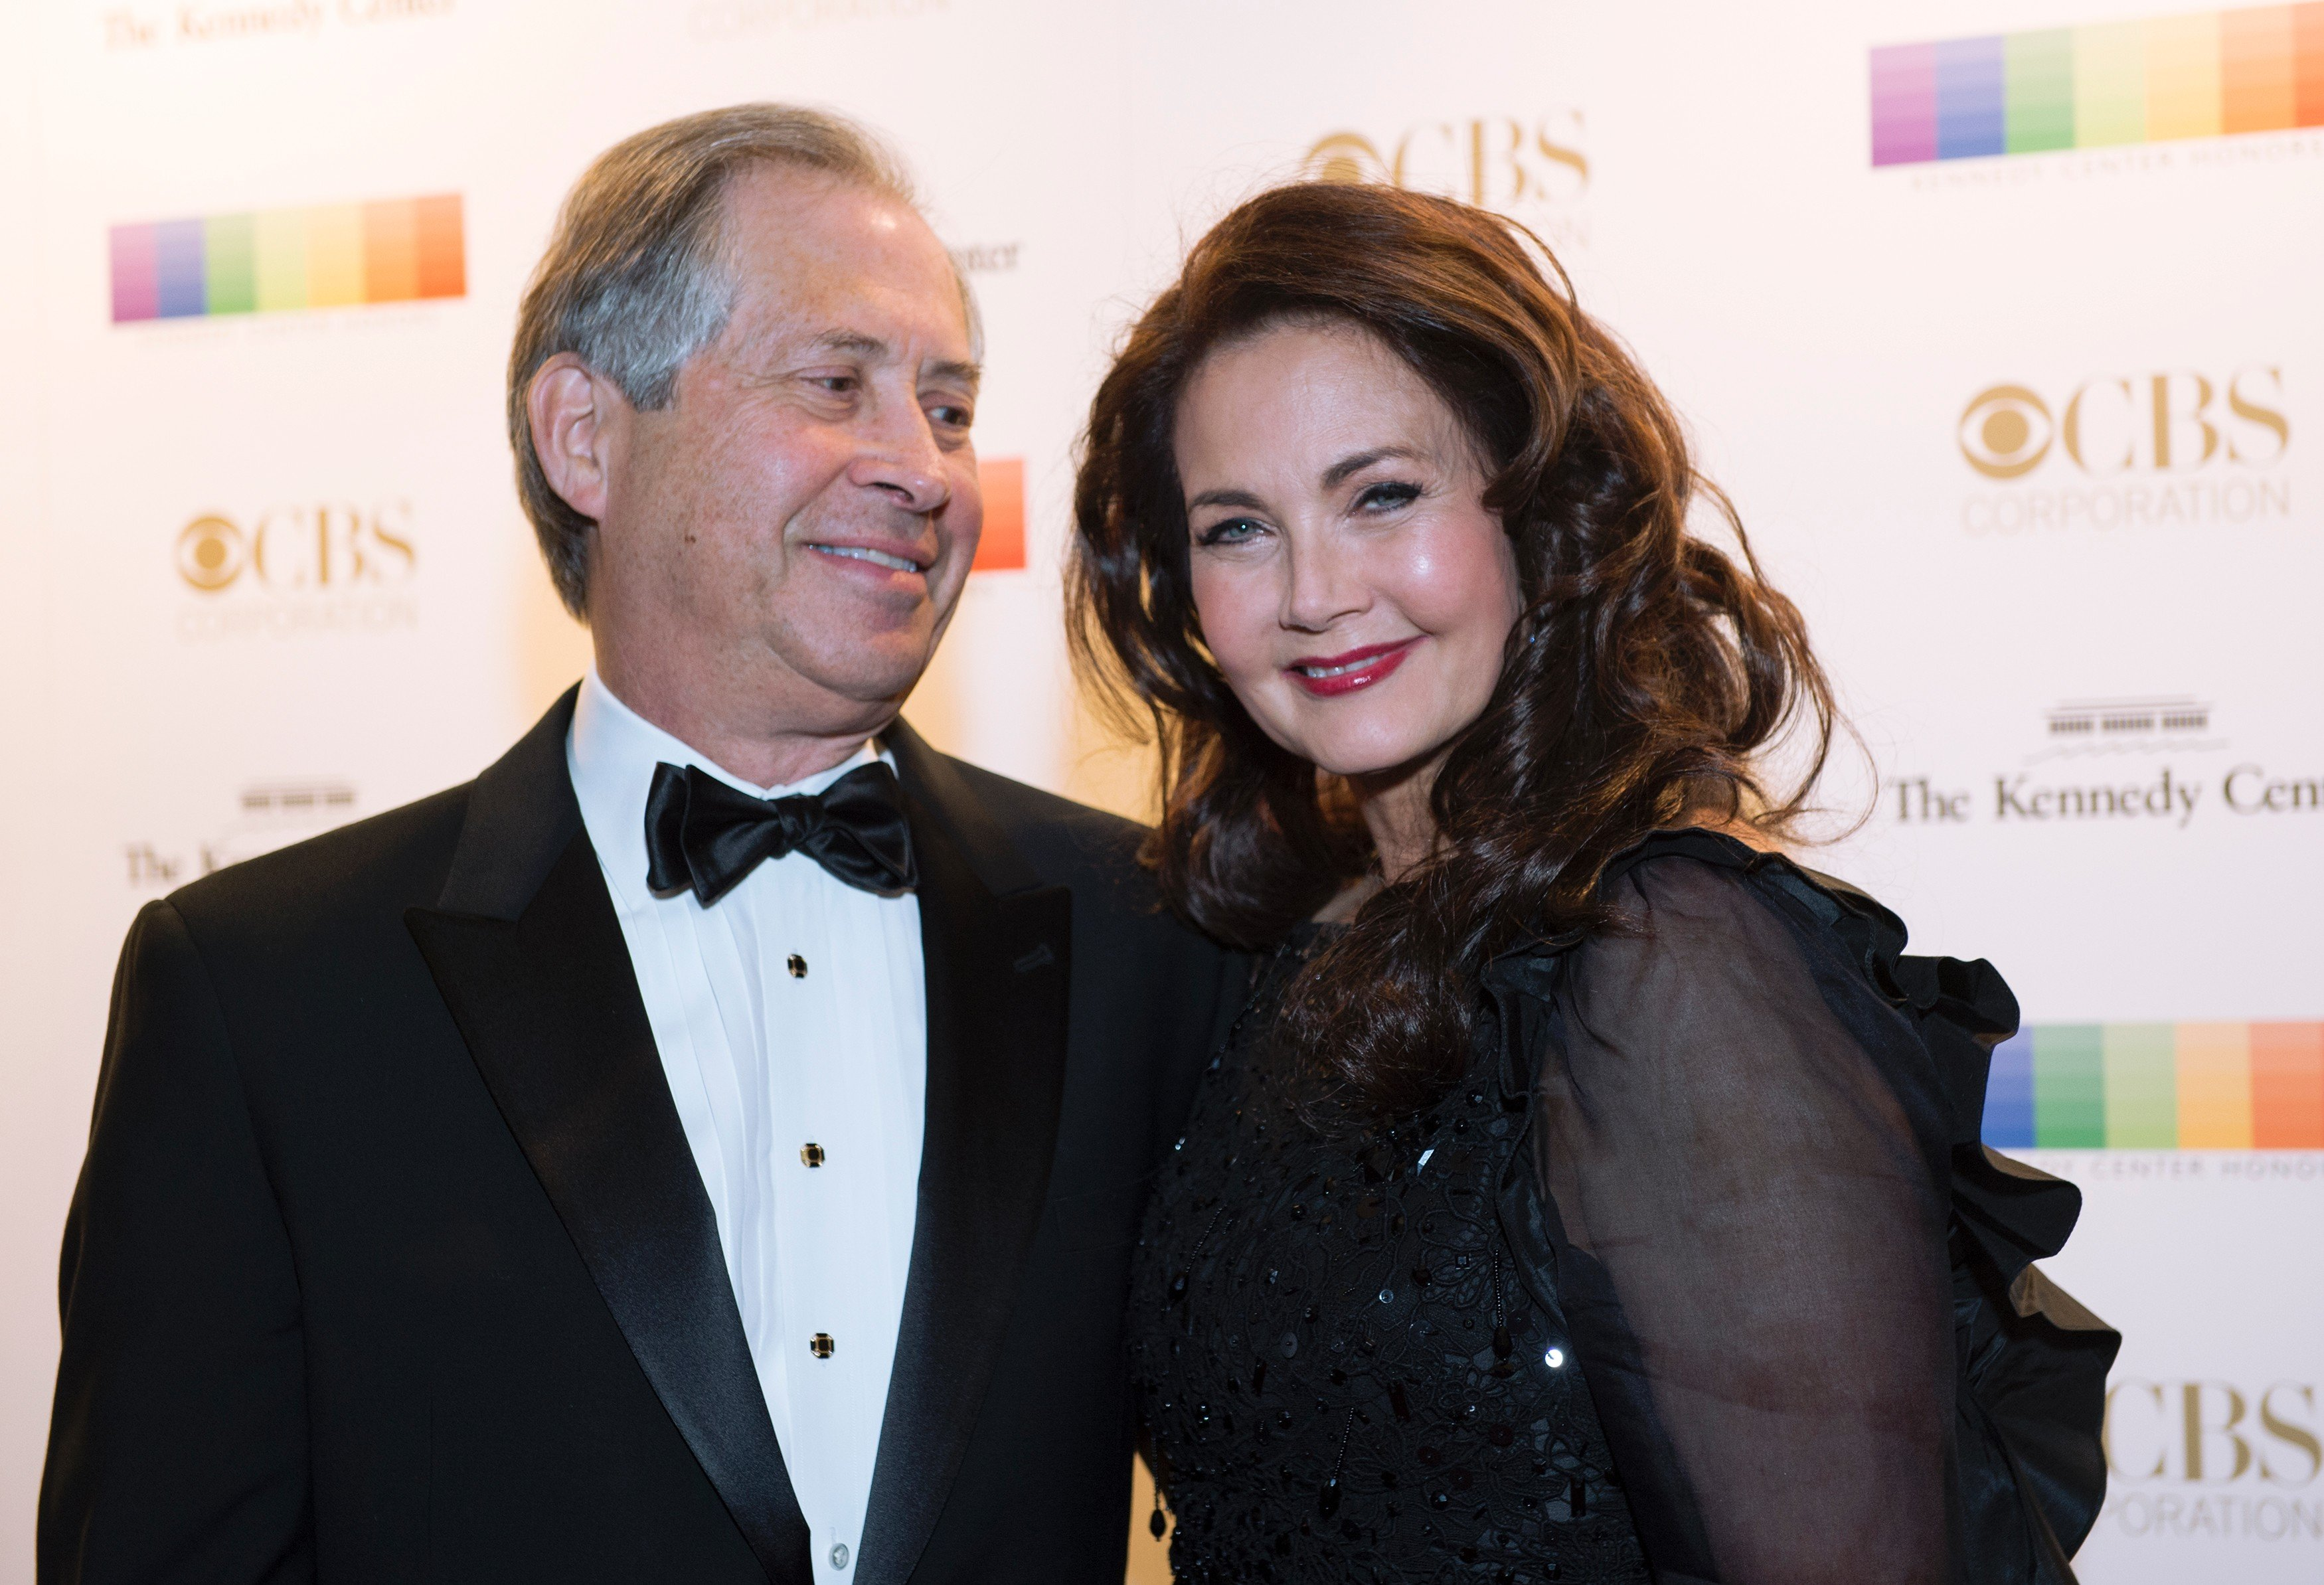 Lynda Carter and her late husband, Robert Altman, pictured at the 38th Annual Kennedy Center Honors, 2015, Washington, DC.   Photo: Getting Images